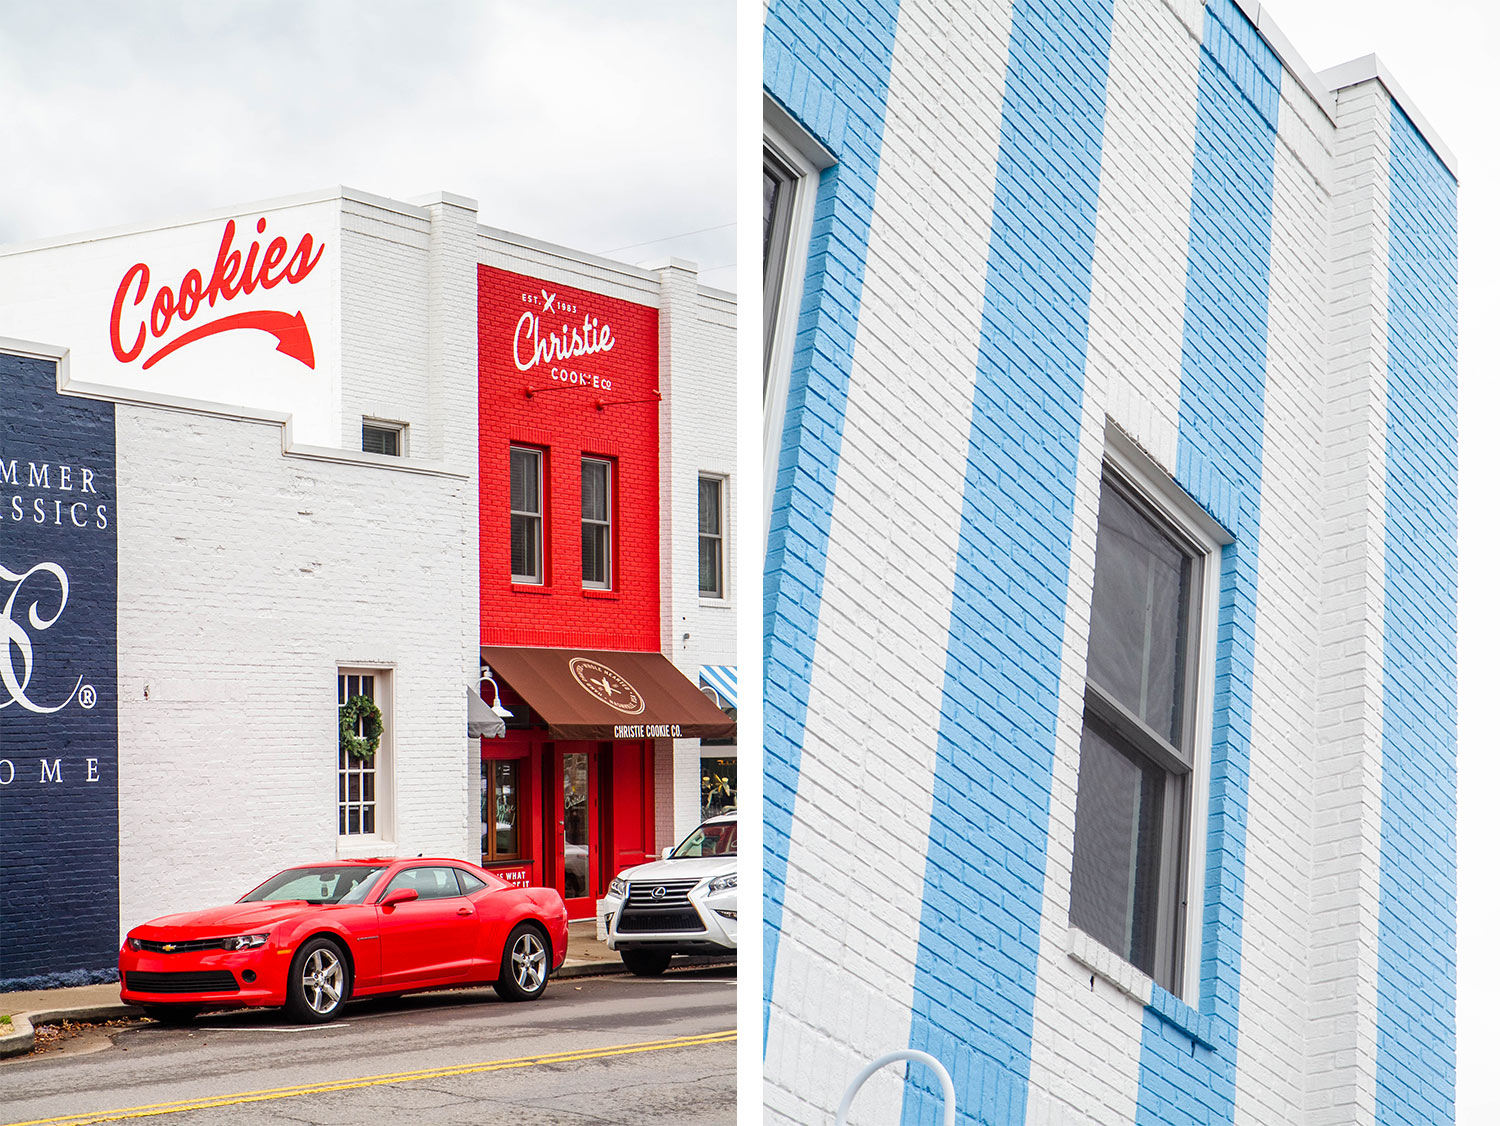 12 South, Nashville, Tennessee